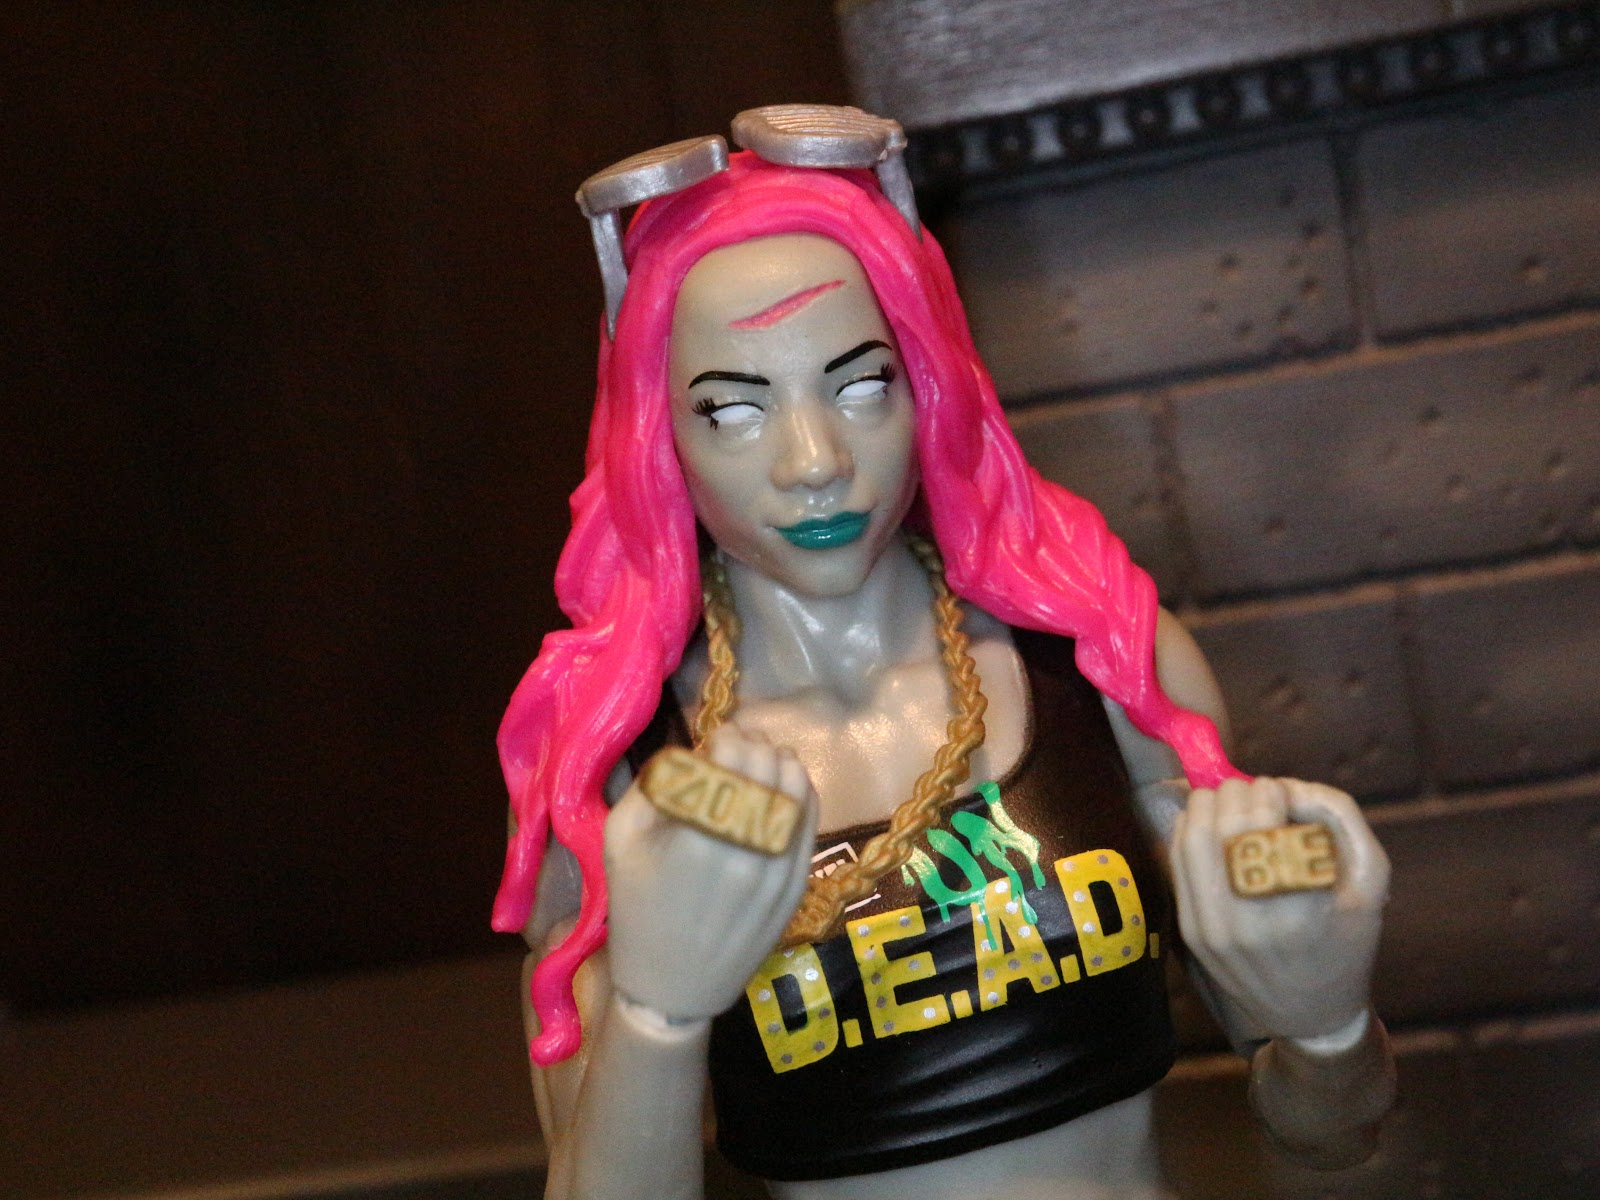 1bad96a42 Action Figure Barbecue: Action Figure Review: Sasha Banks from WWE ...